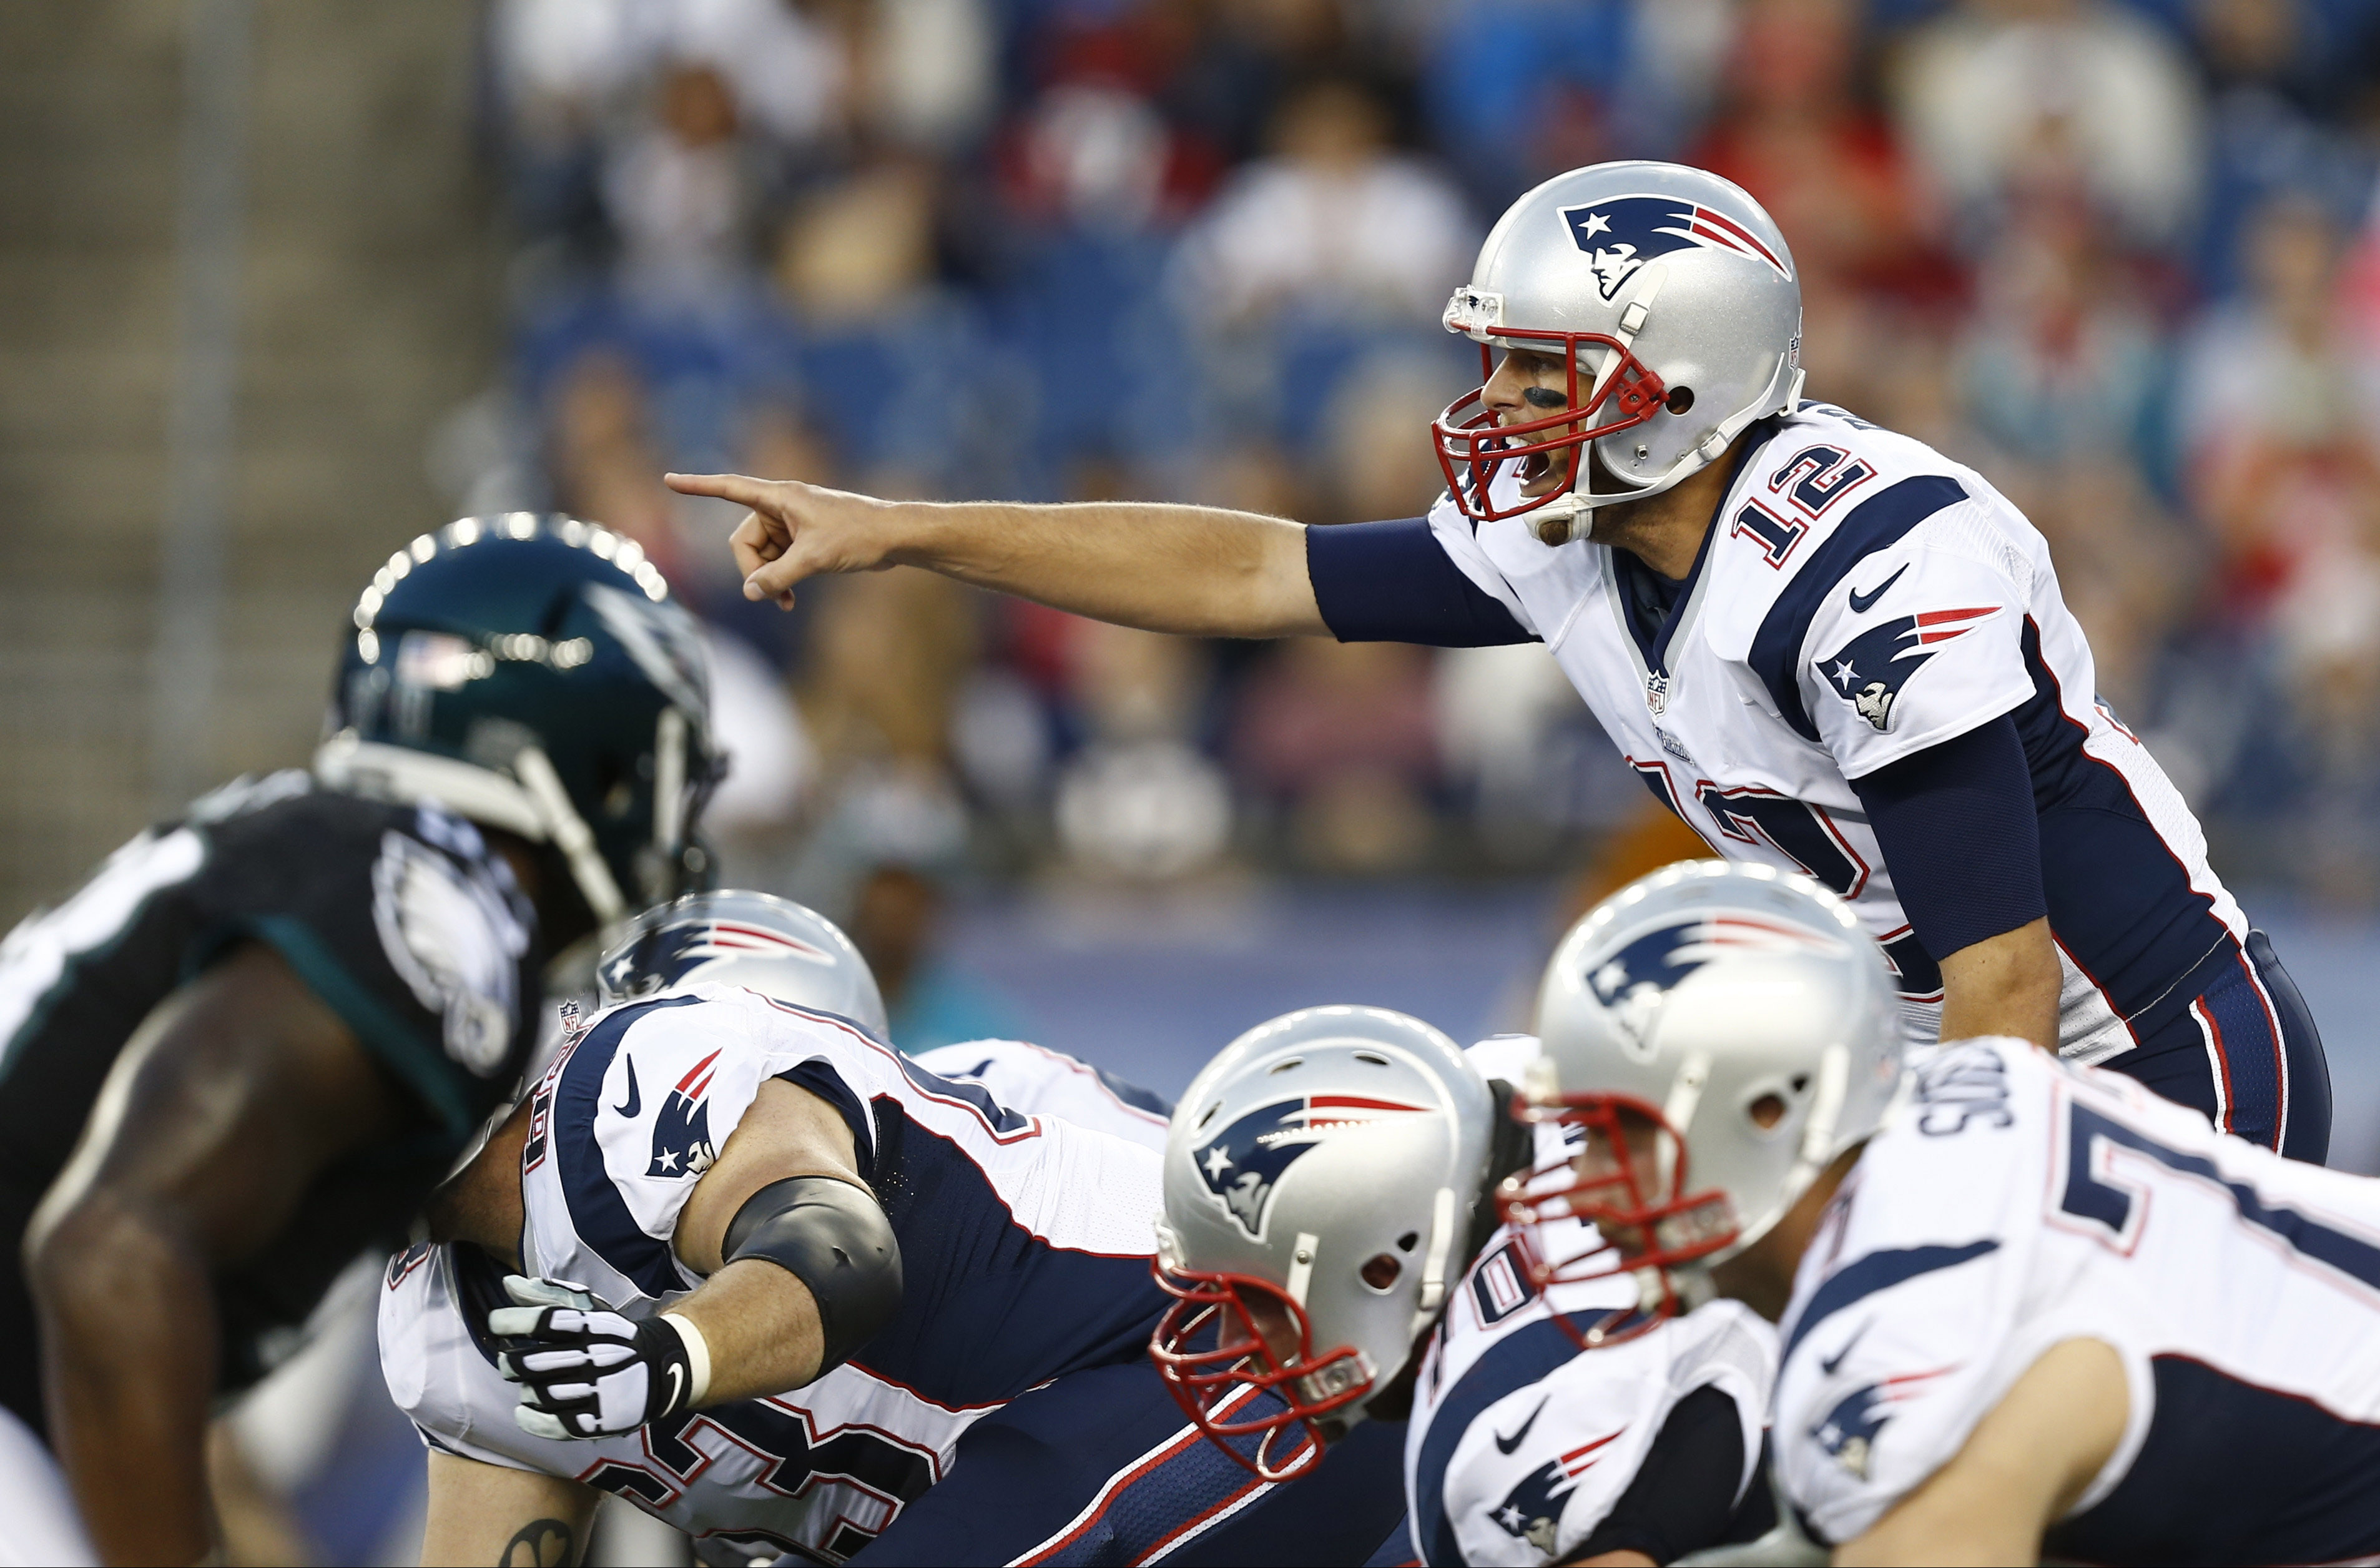 Pats Get Solid Qb Play Against Eagles The Japan Times